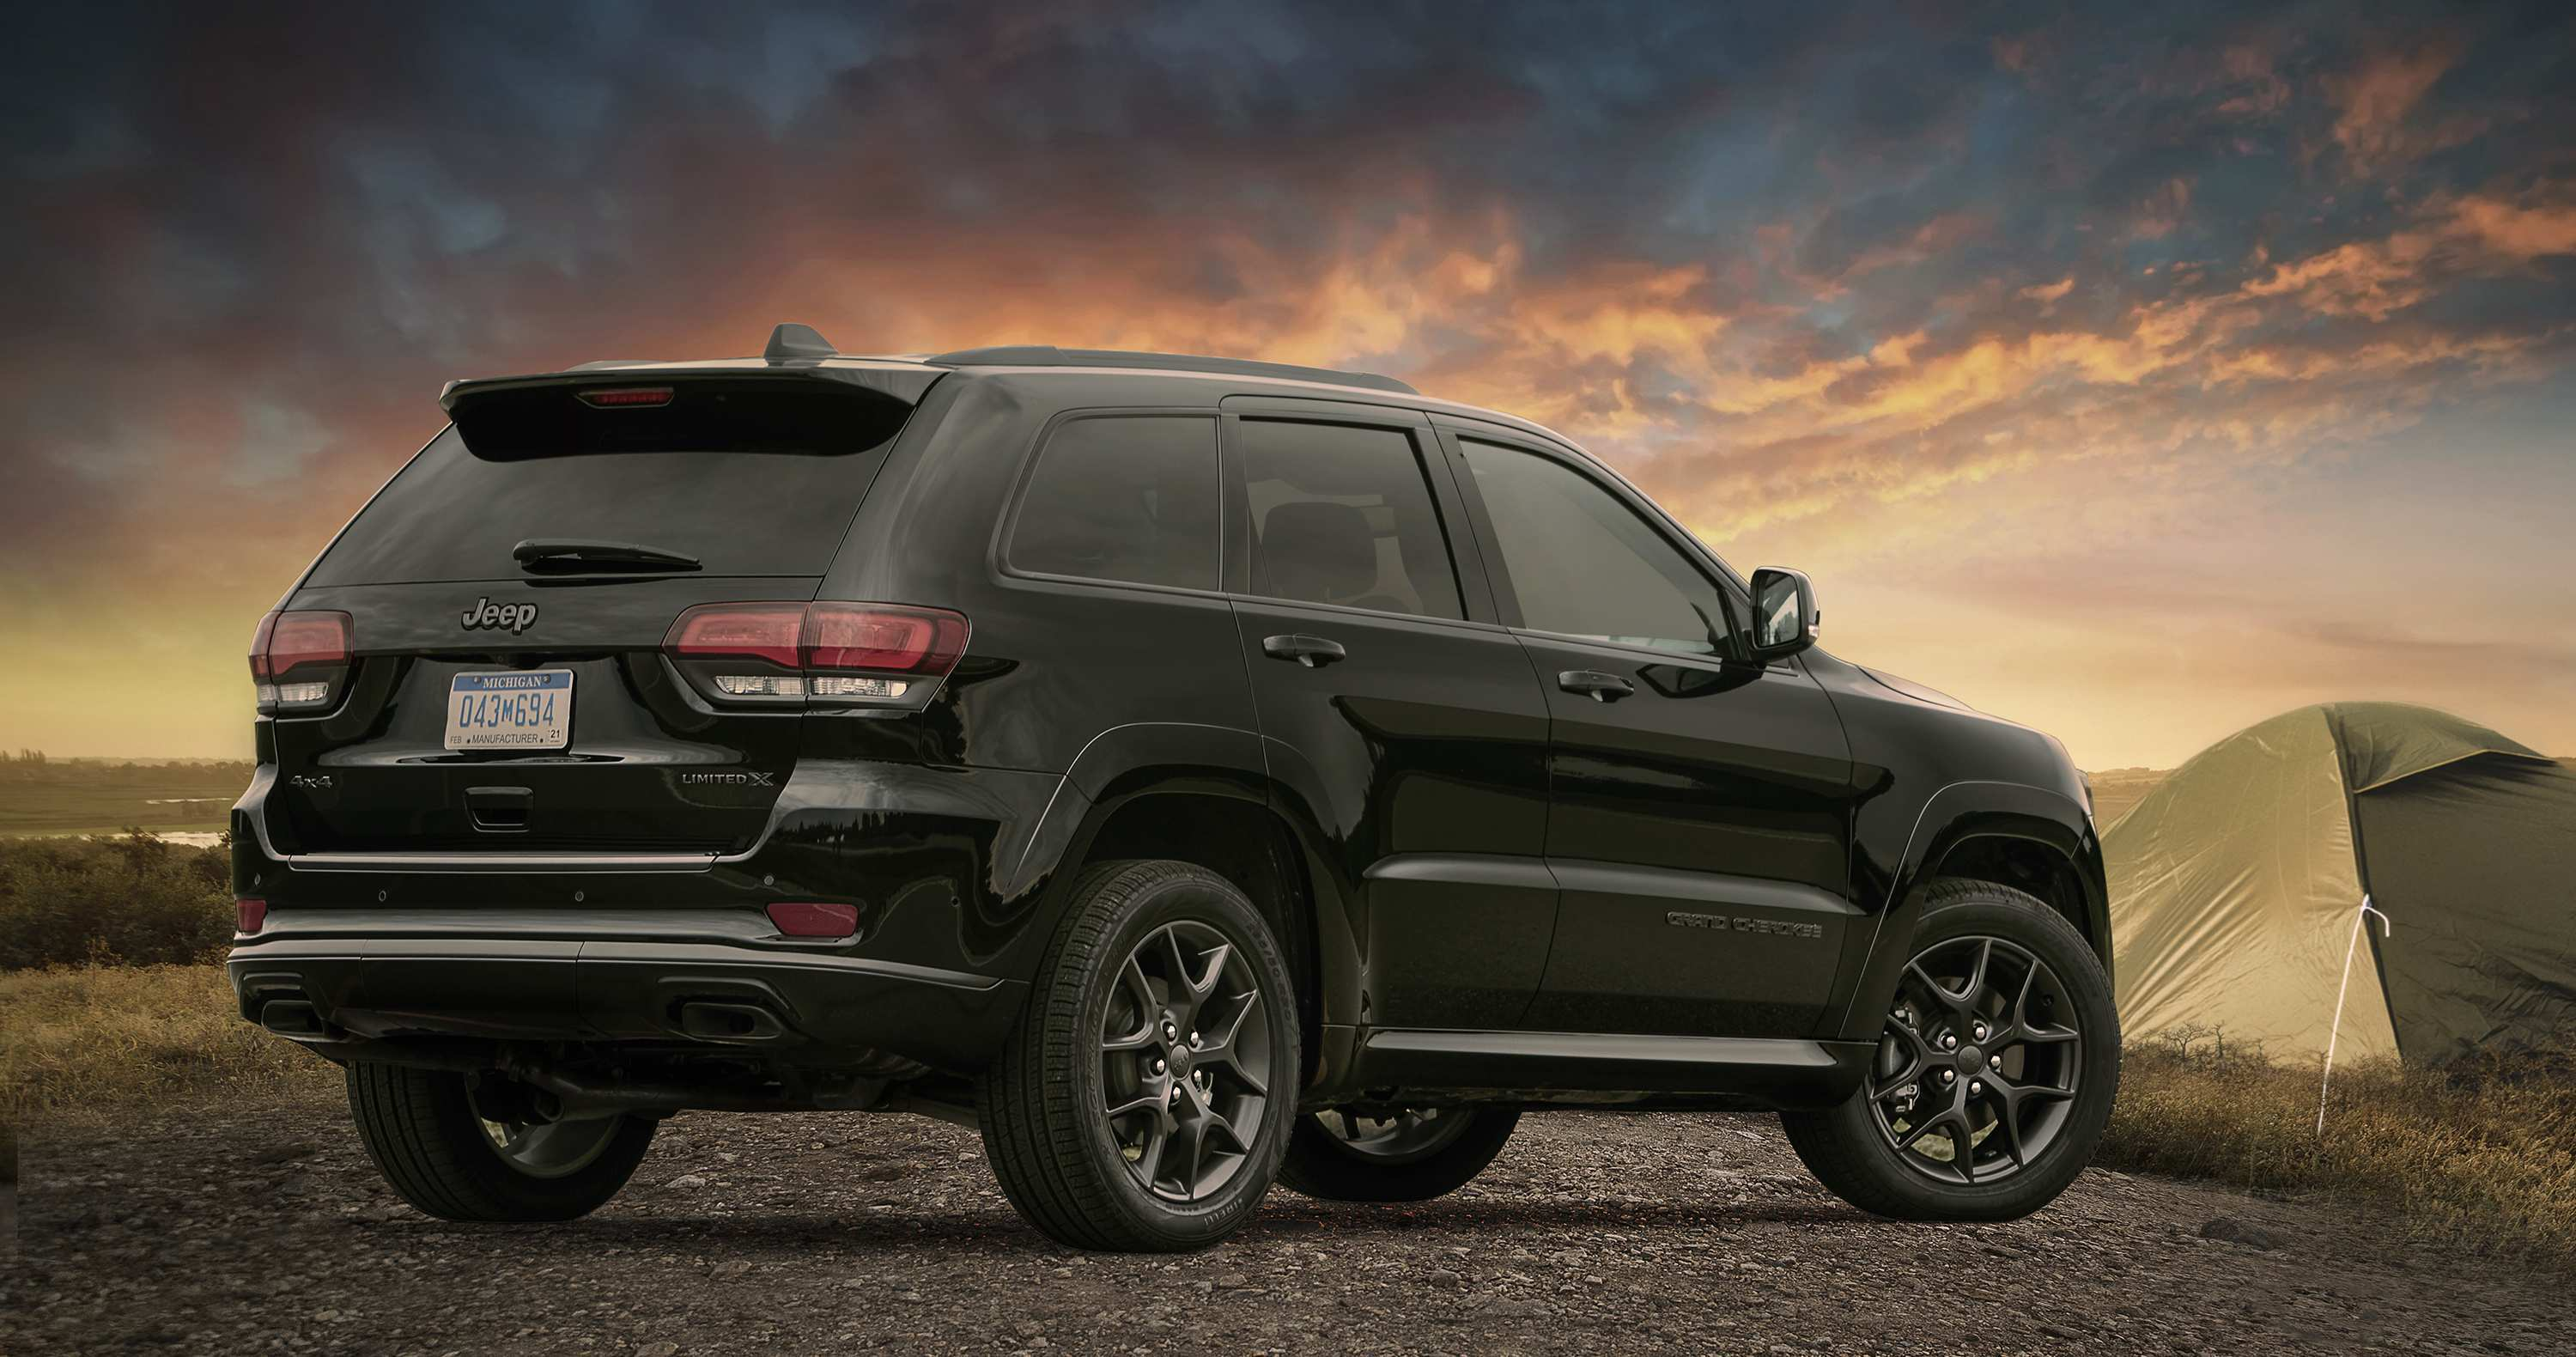 52 All New 2019 Dodge Grand Cherokee Release Date Review for 2019 Dodge Grand Cherokee Release Date